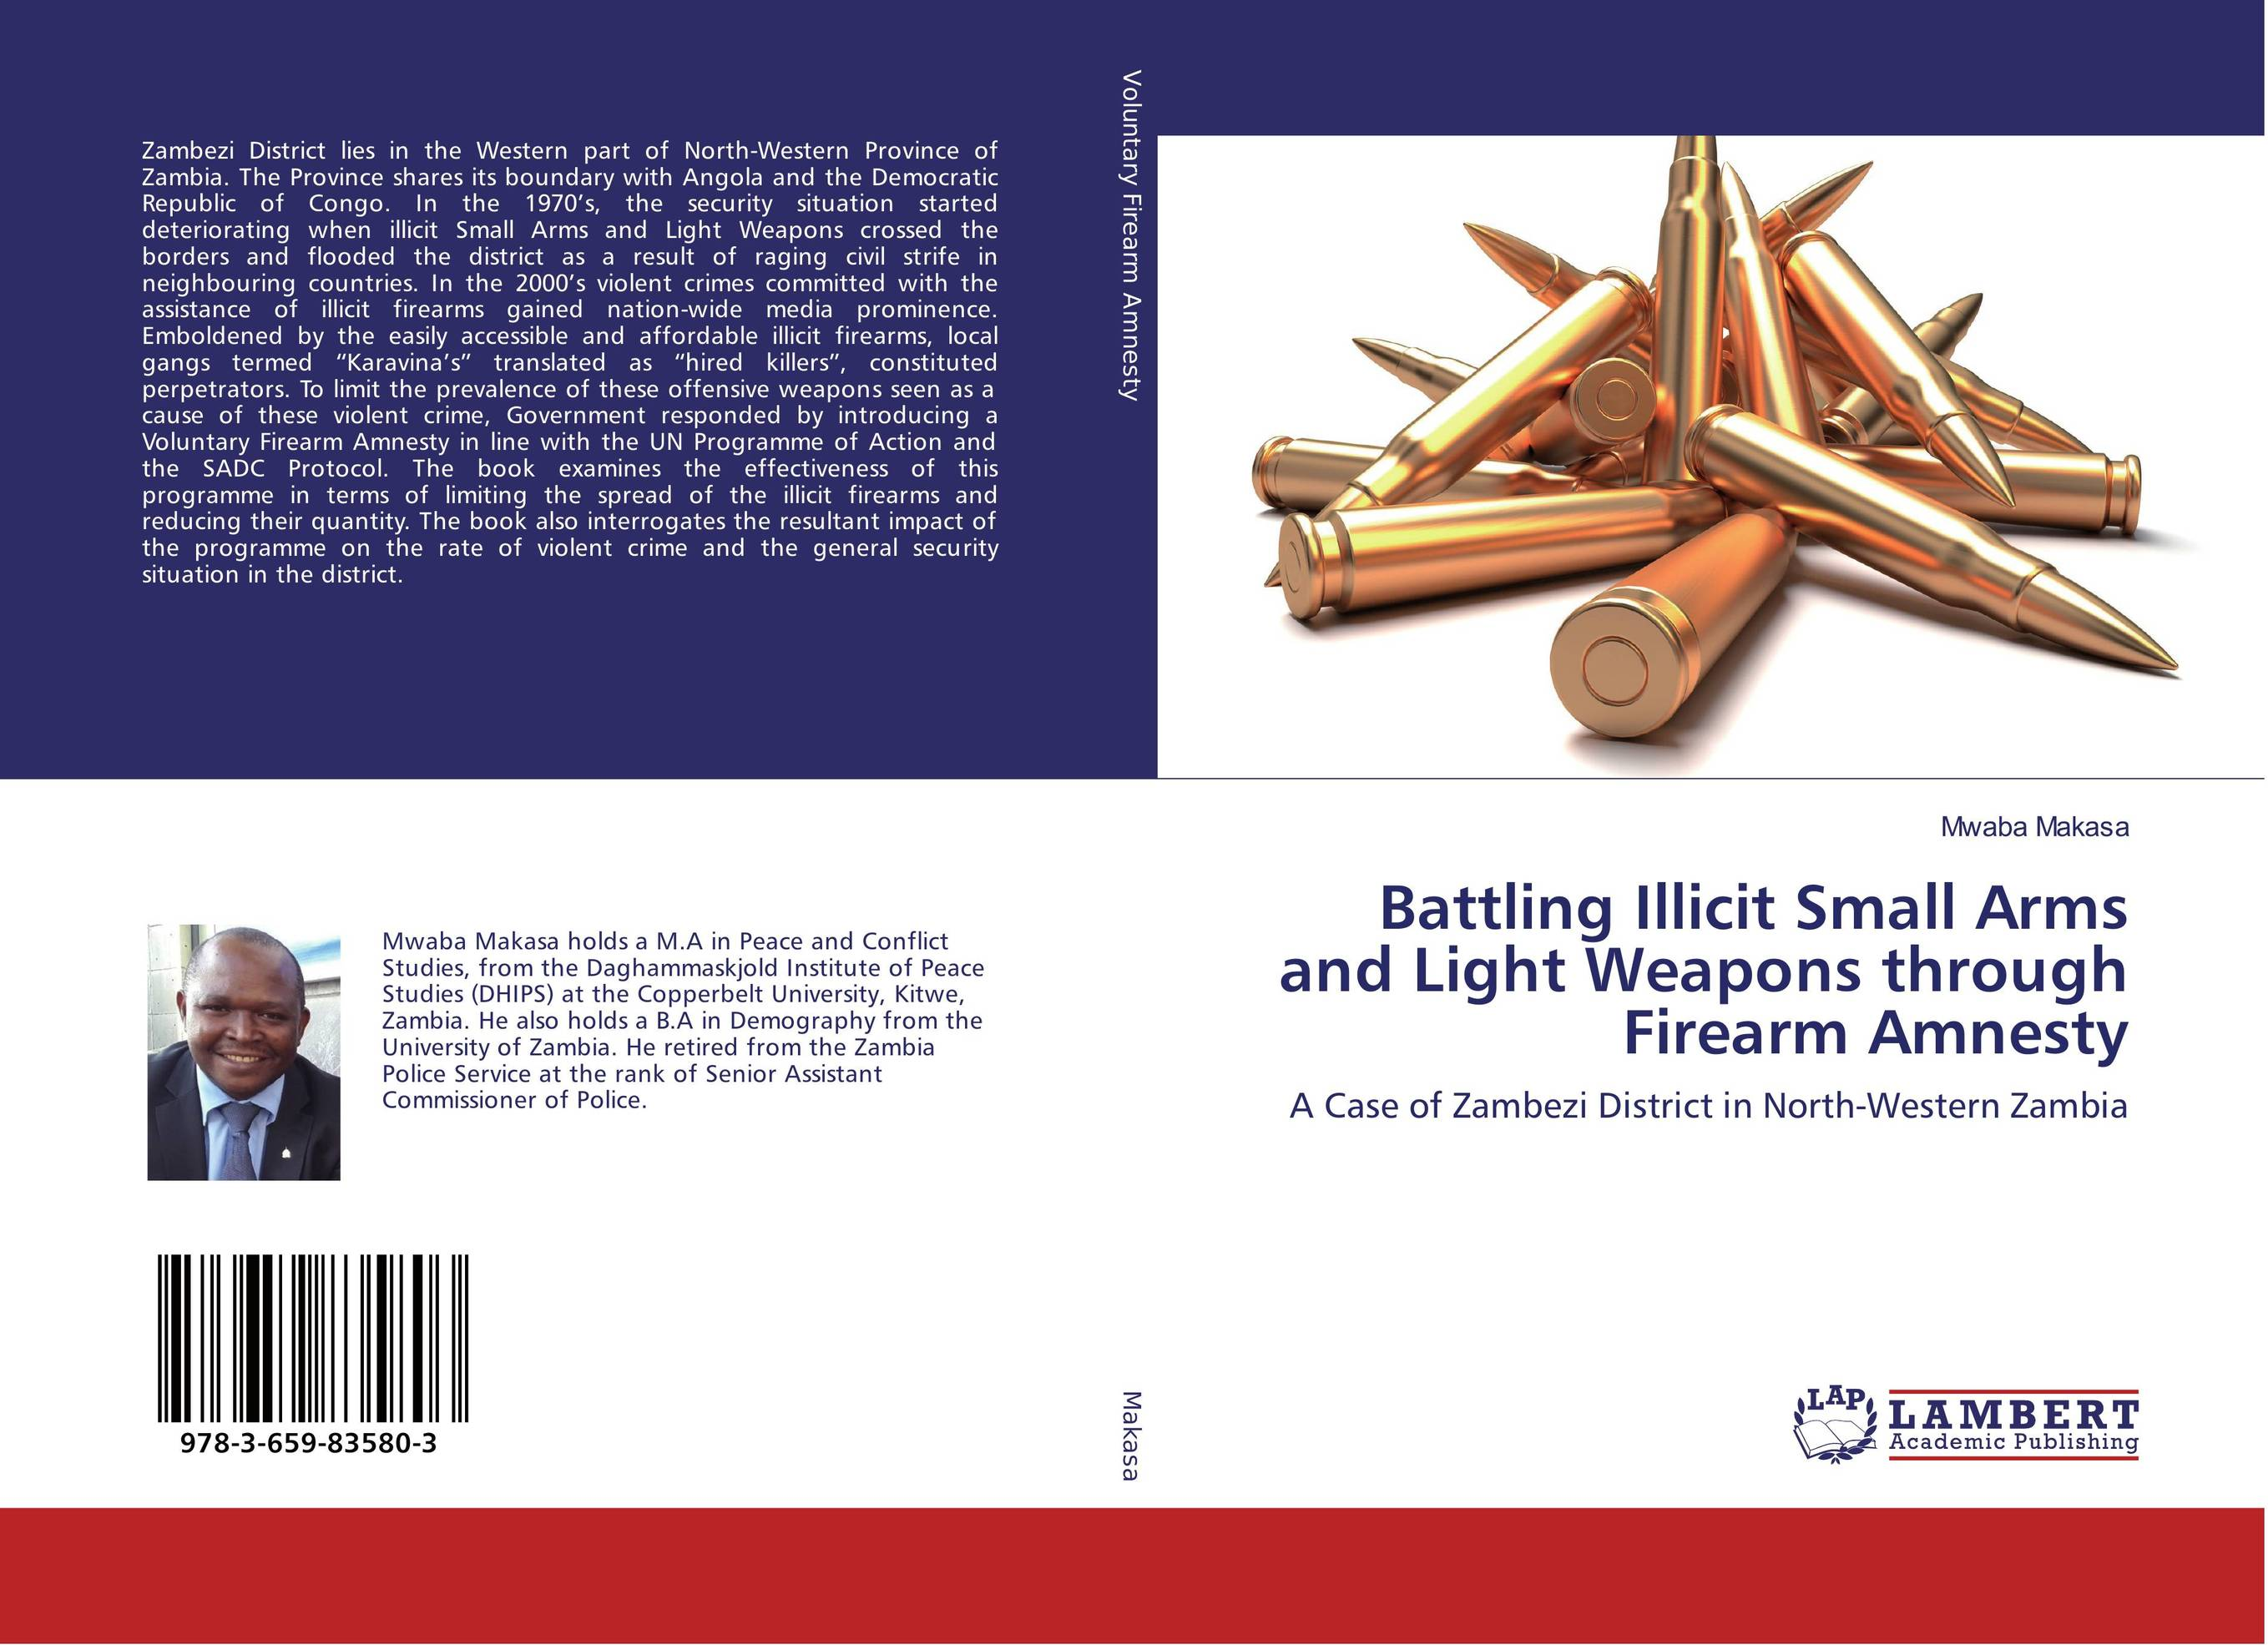 Battling Illicit Small Arms and Light Weapons through Firearm Amnesty voluntary associations in tsarist russia – science patriotism and civil society